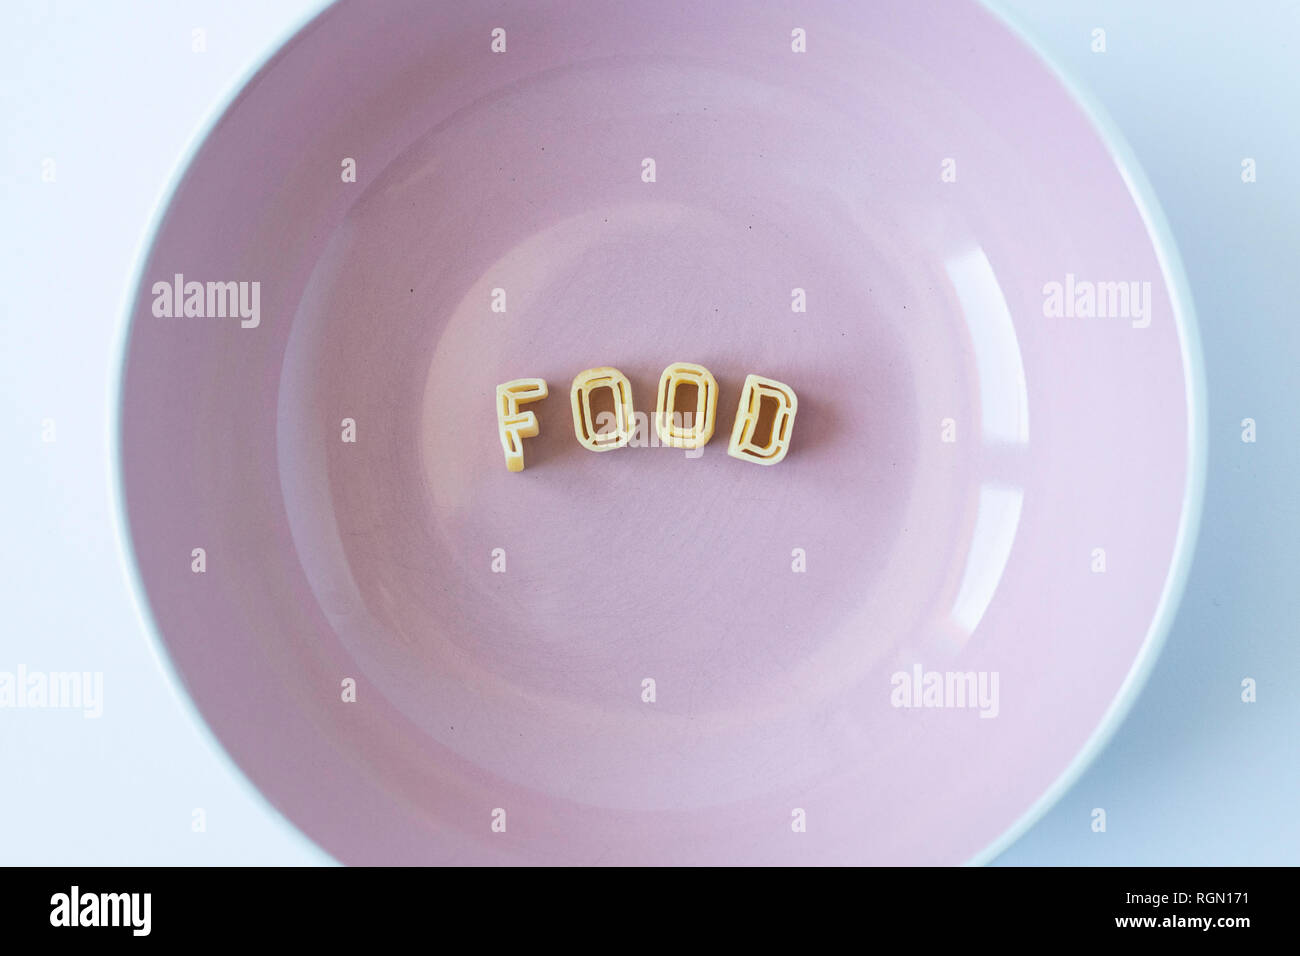 """The word """"food"""" composed with real pasta letters in a pink dish. Stock Photo"""